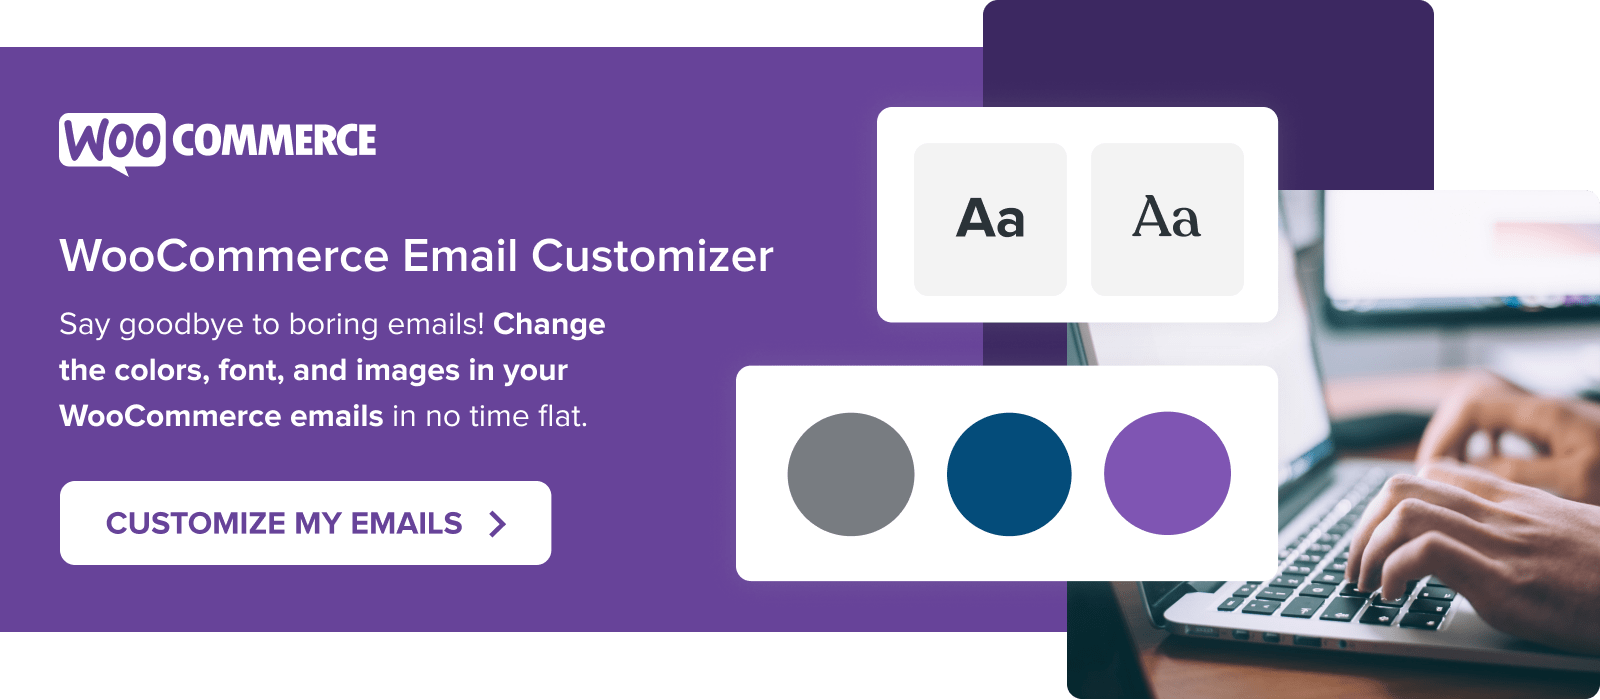 Edit your WooCommerce emails with the WooCommerce Email Customizer